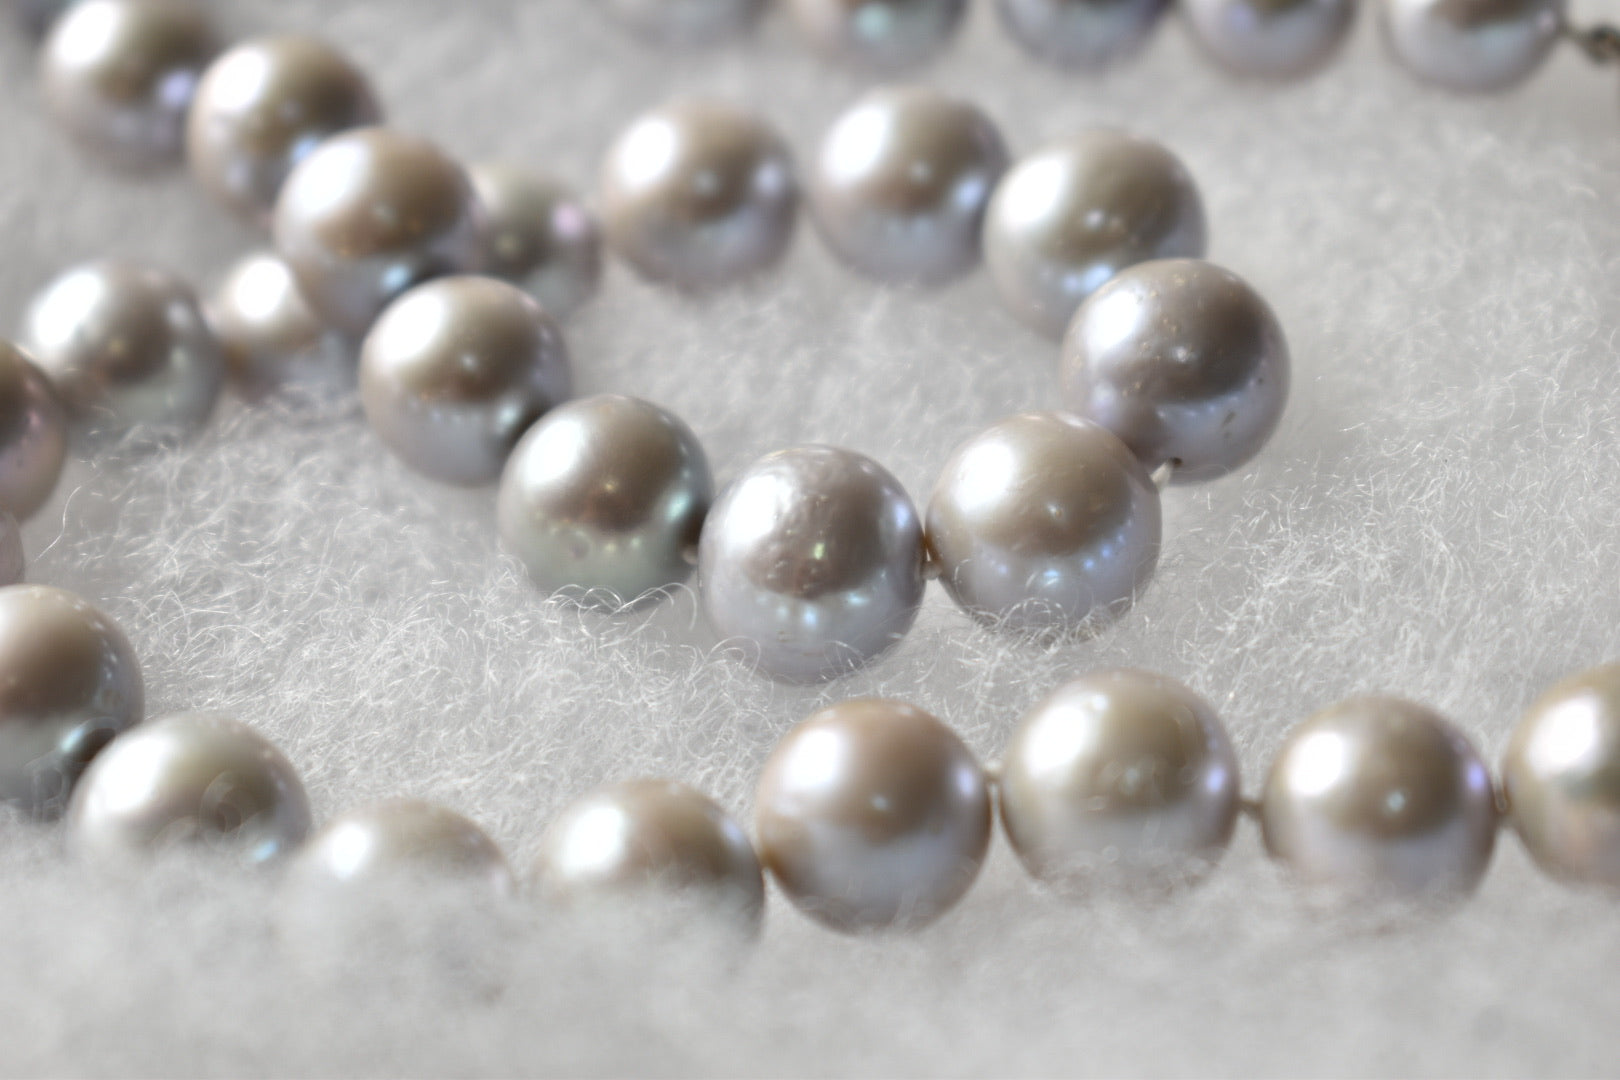 Silver Gray Freshwater Edison Pearl Necklace, 10.75-11.75mm